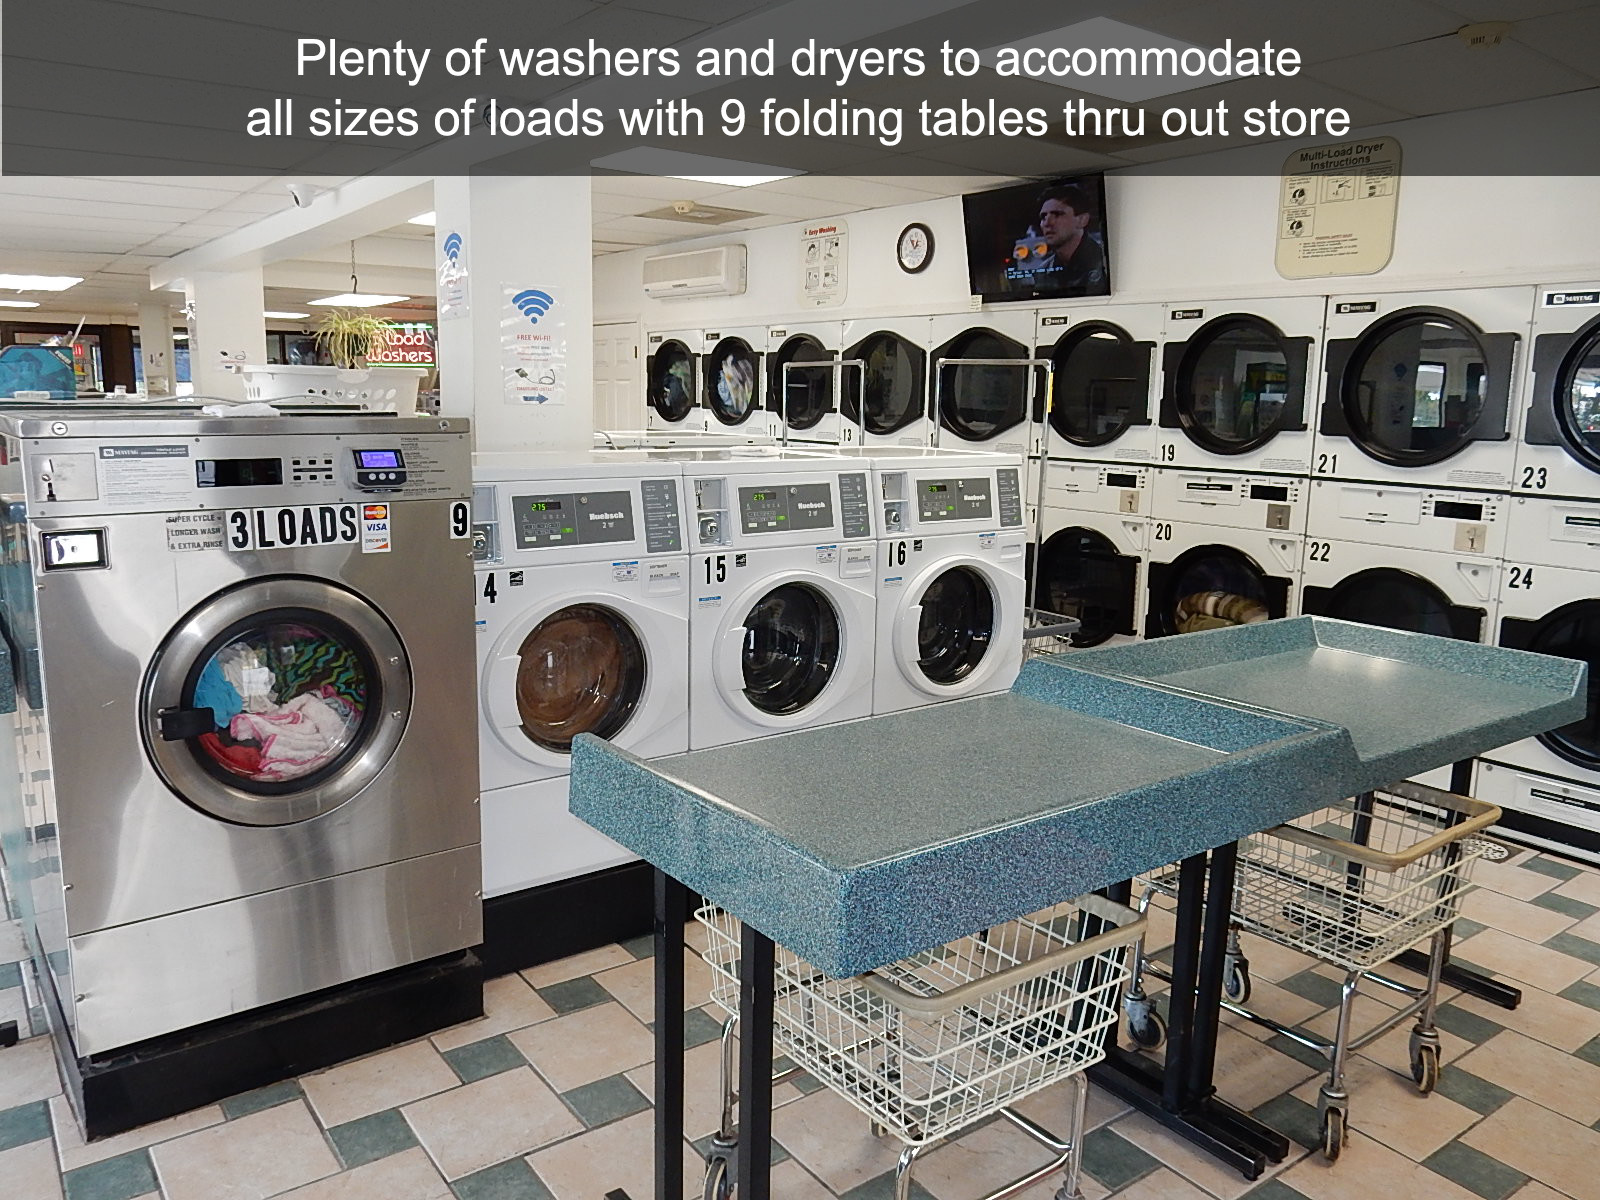 Plenty of washers and dryers to accommodate all sizes of loads with 9 folding tables thru out store